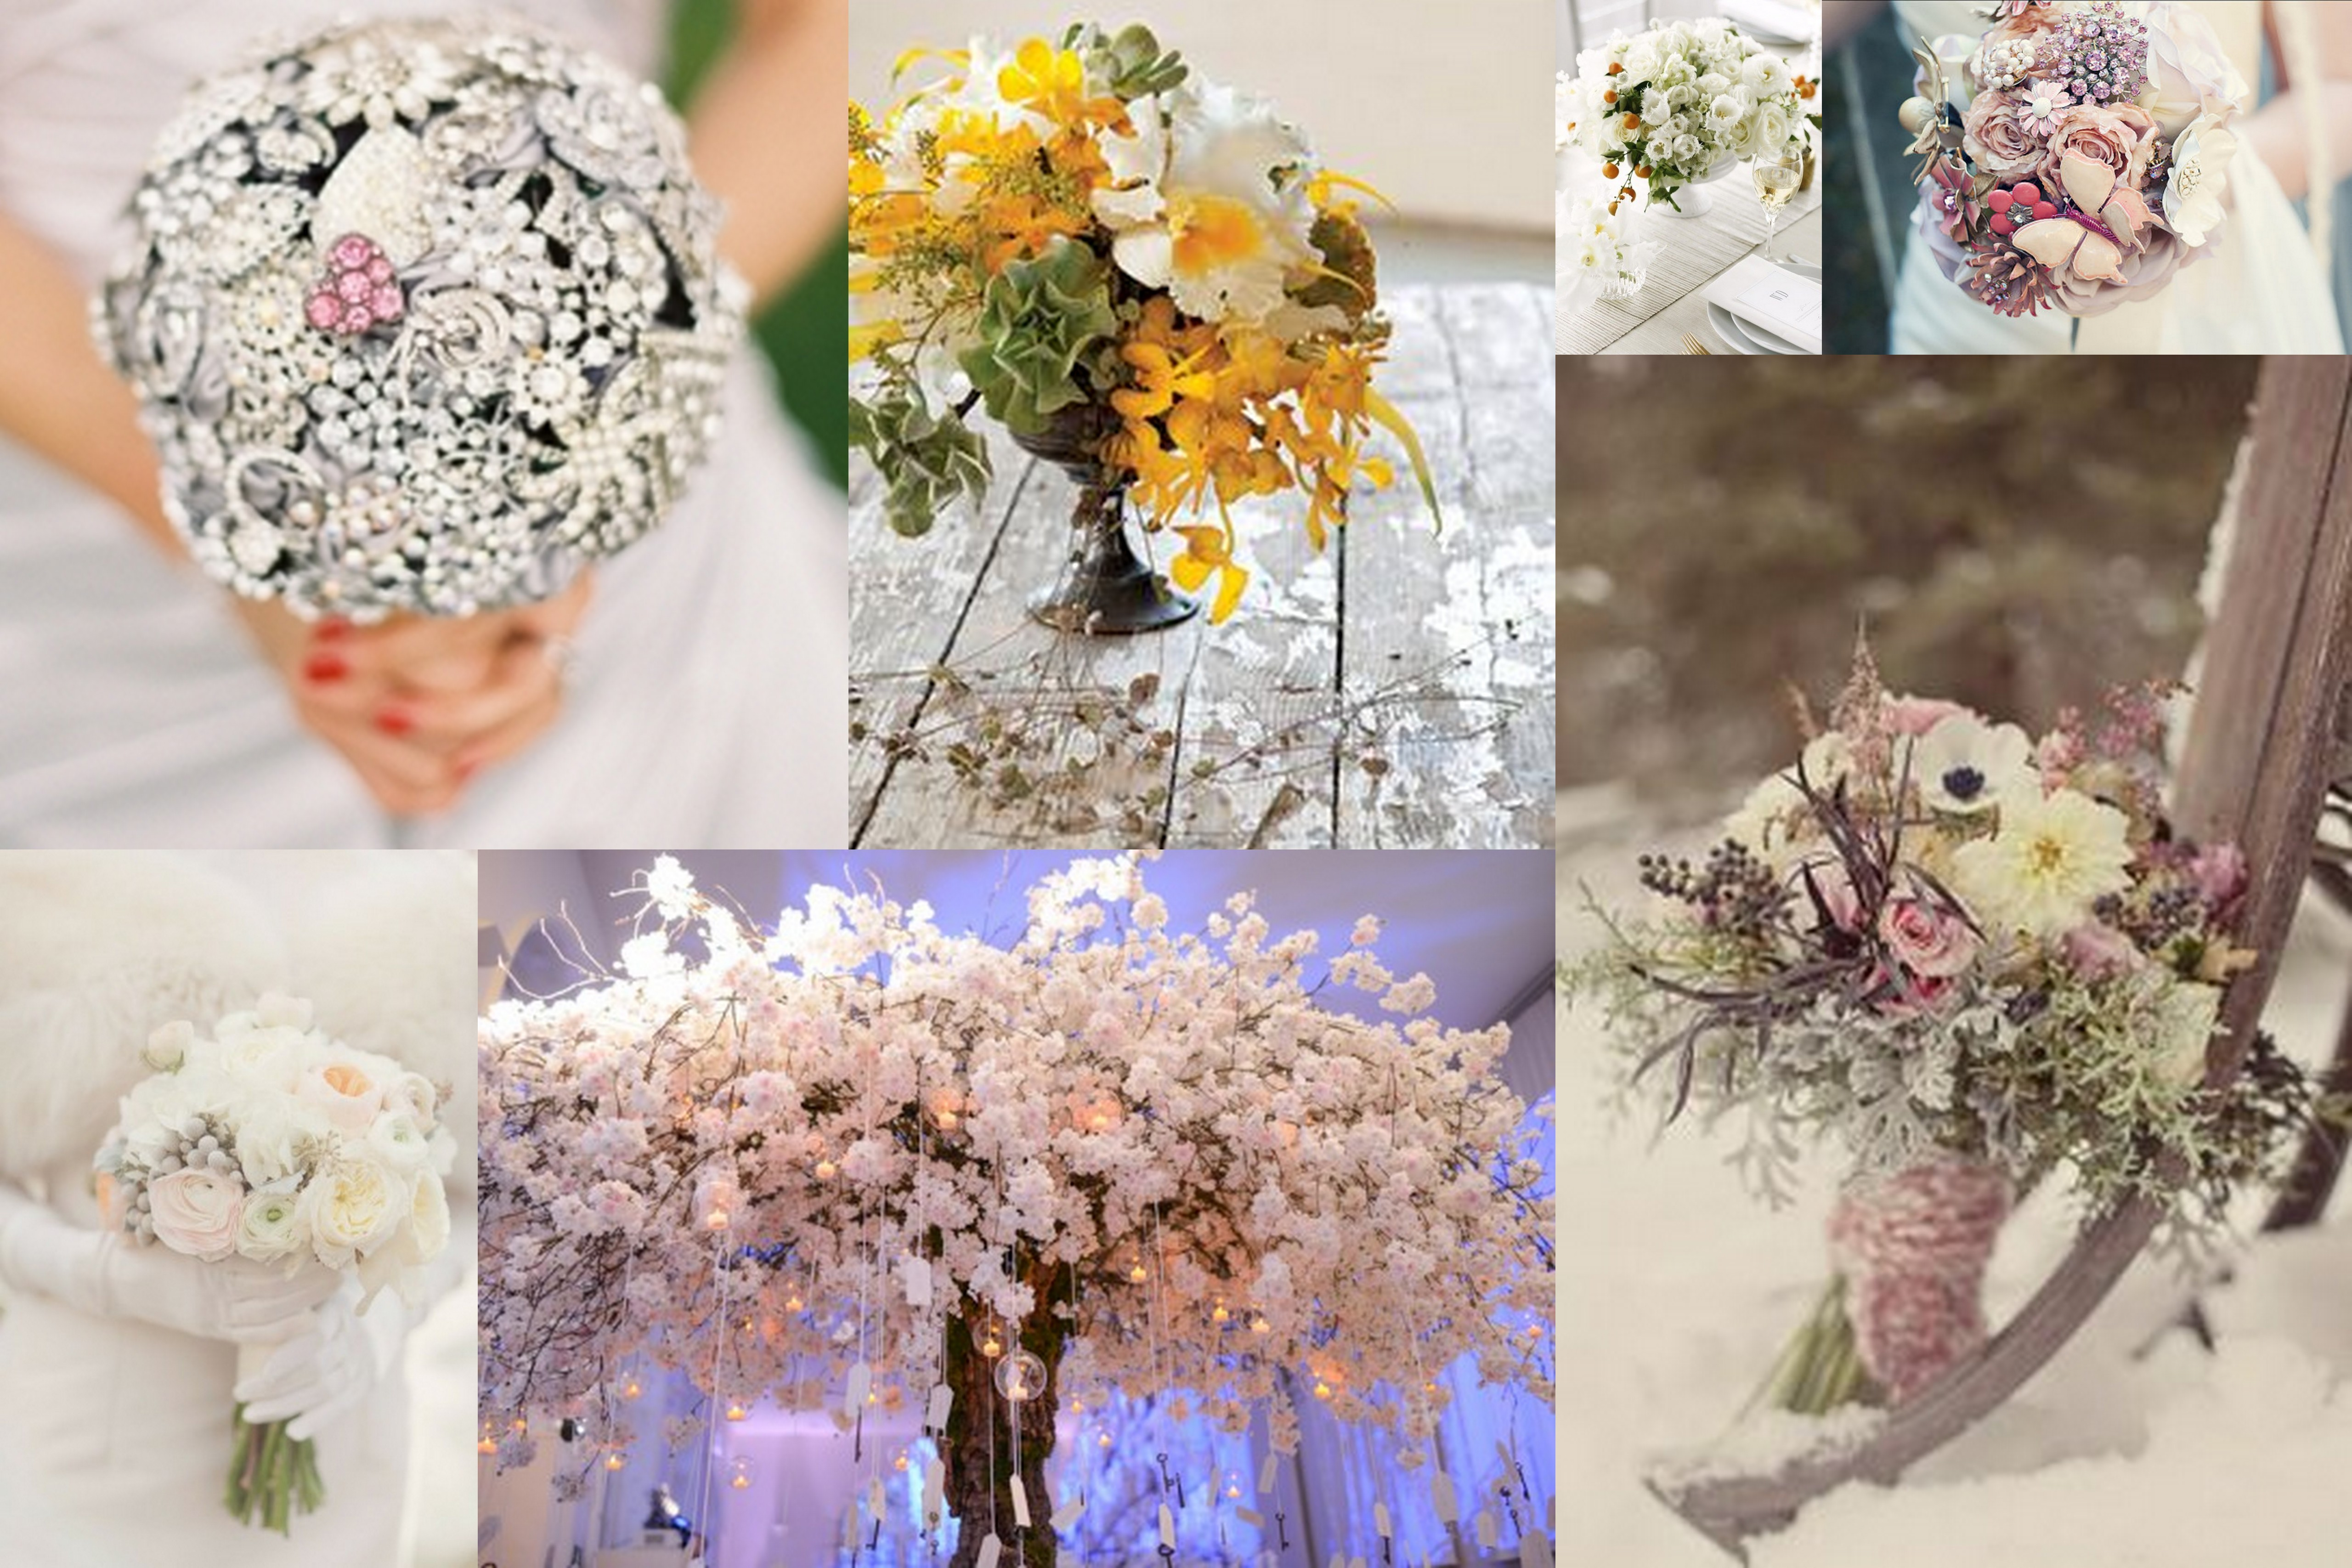 Citrus-Snow Wedding FLowers - A2zWeddingCards